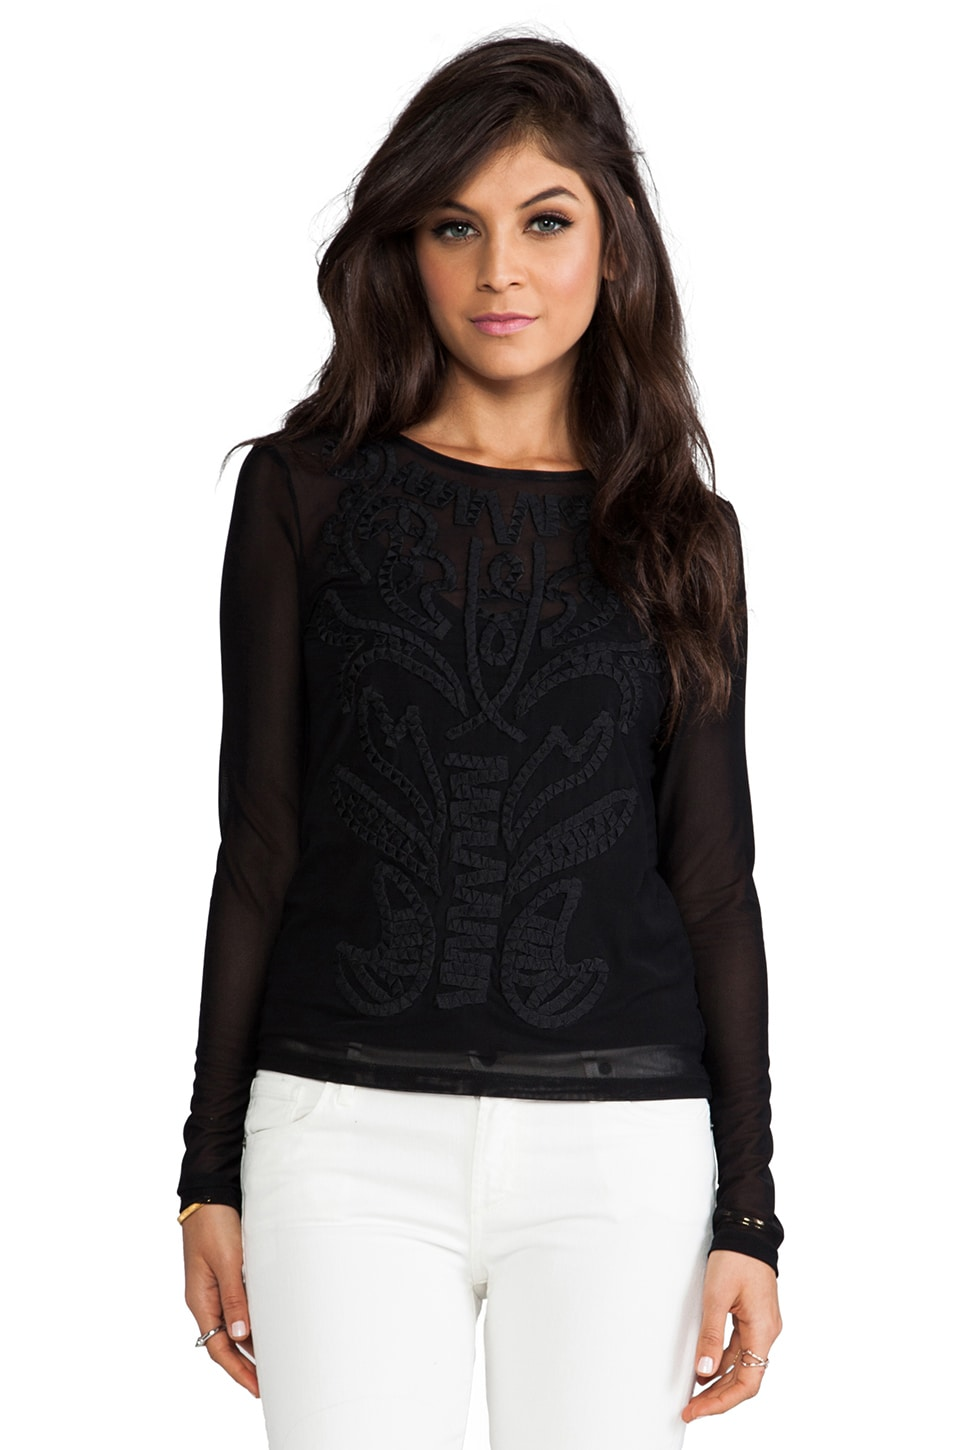 MM Couture by Miss Me Embroidered Long Sleeve Top in Black